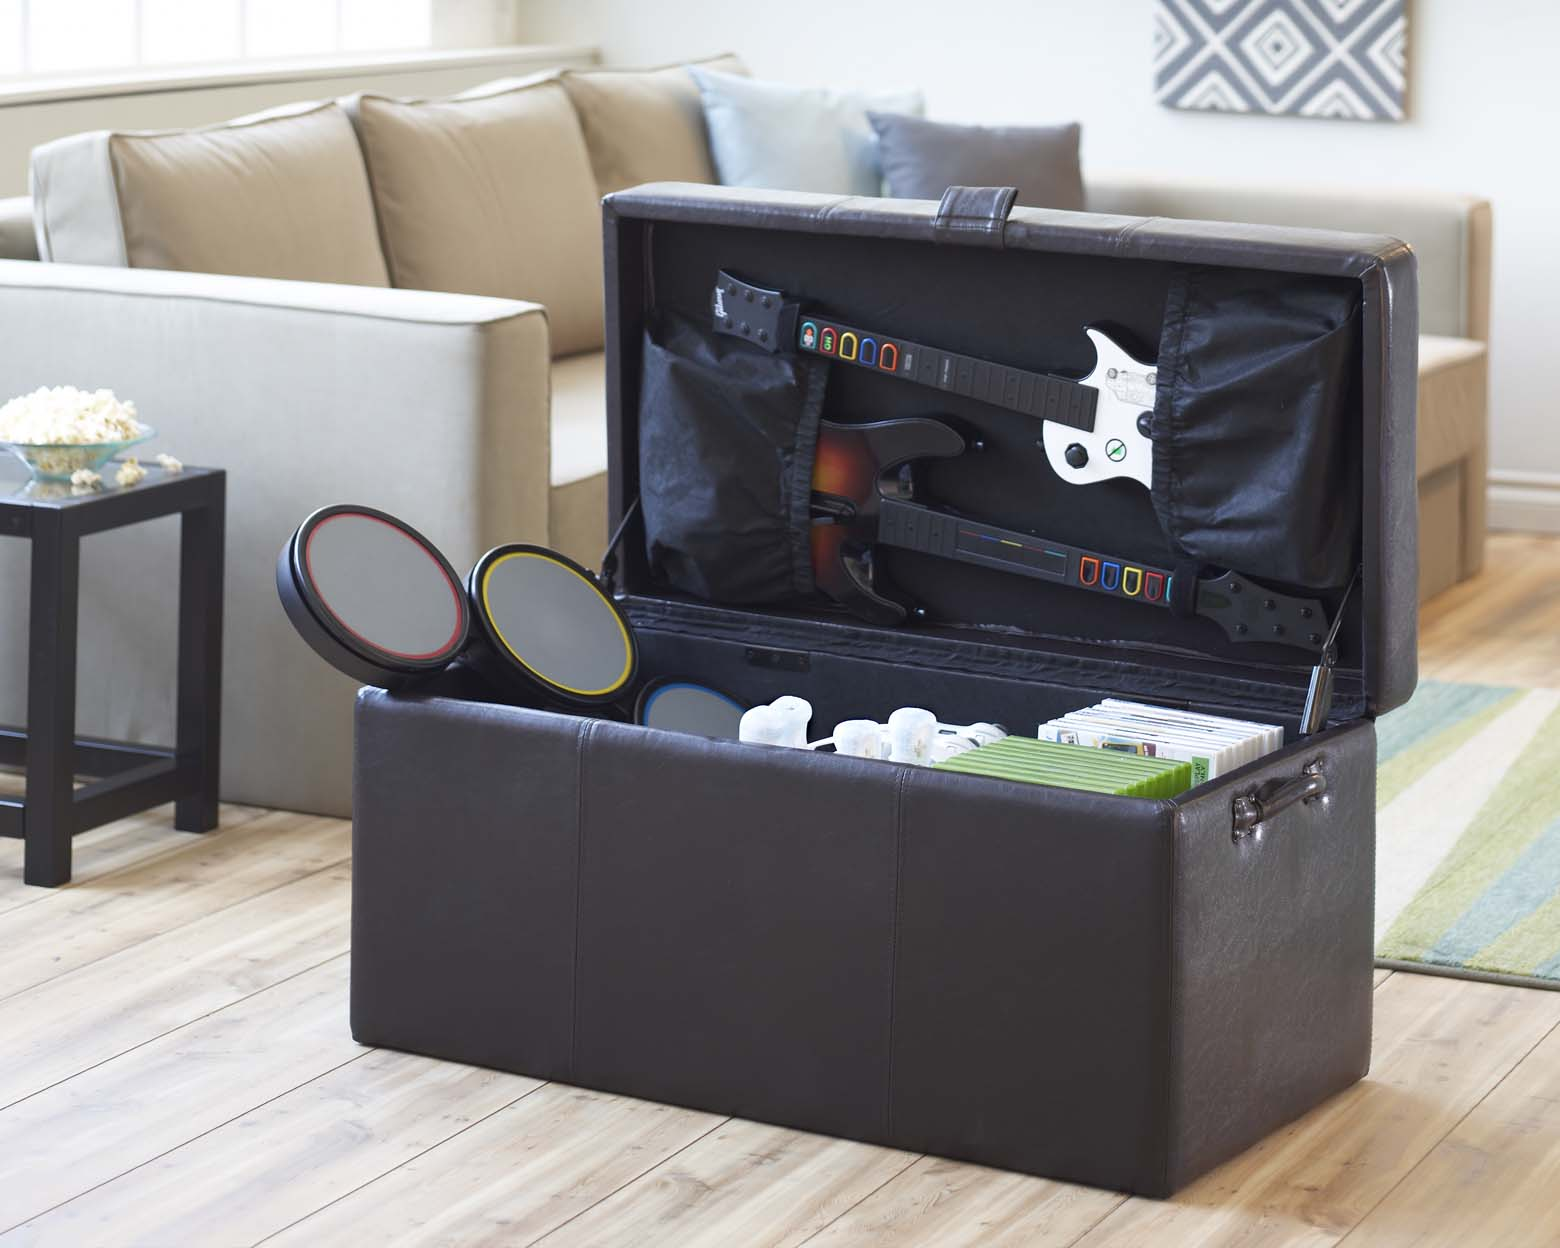 ... LevelUp Universal Double Gaming Ottoman Is An All In One Storage  Solution For Both Wii And Xbox Consoles, Games And Accessories.universal  Double